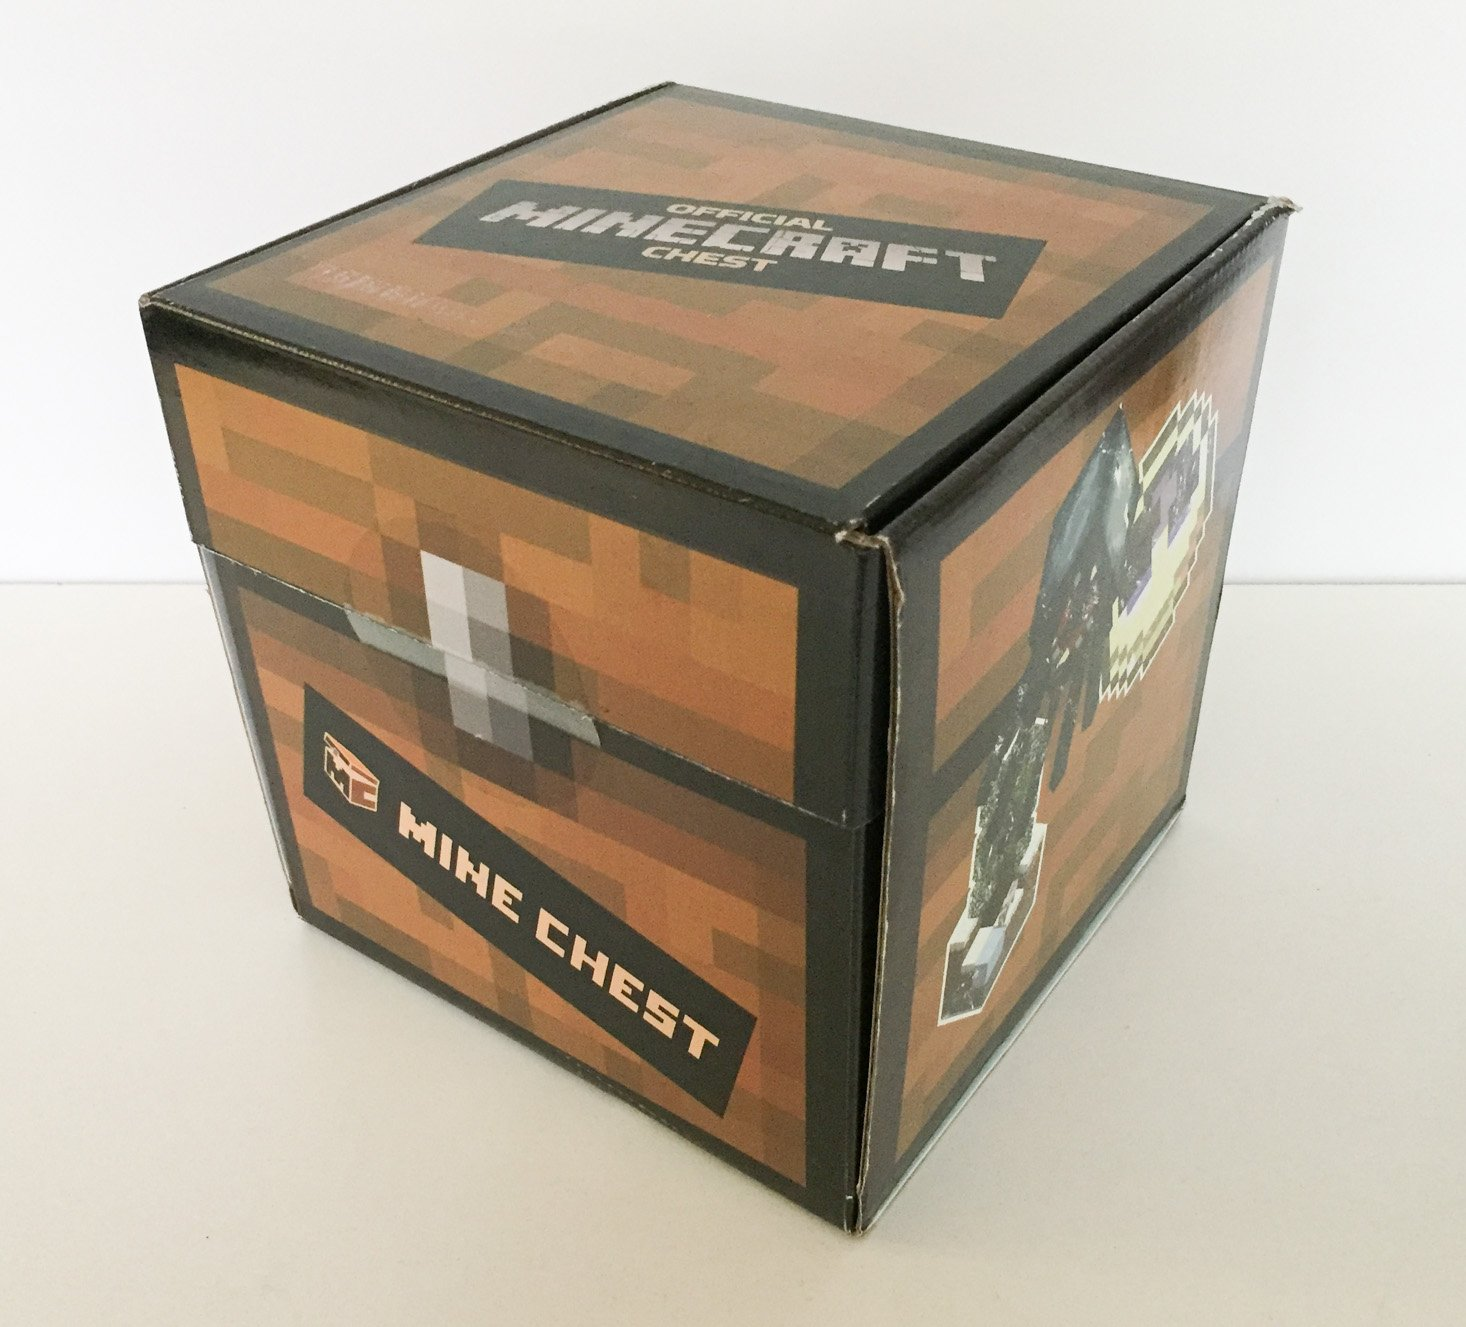 Mine Chest Minecraft Subscription Box Review – Sept/Oct 2017